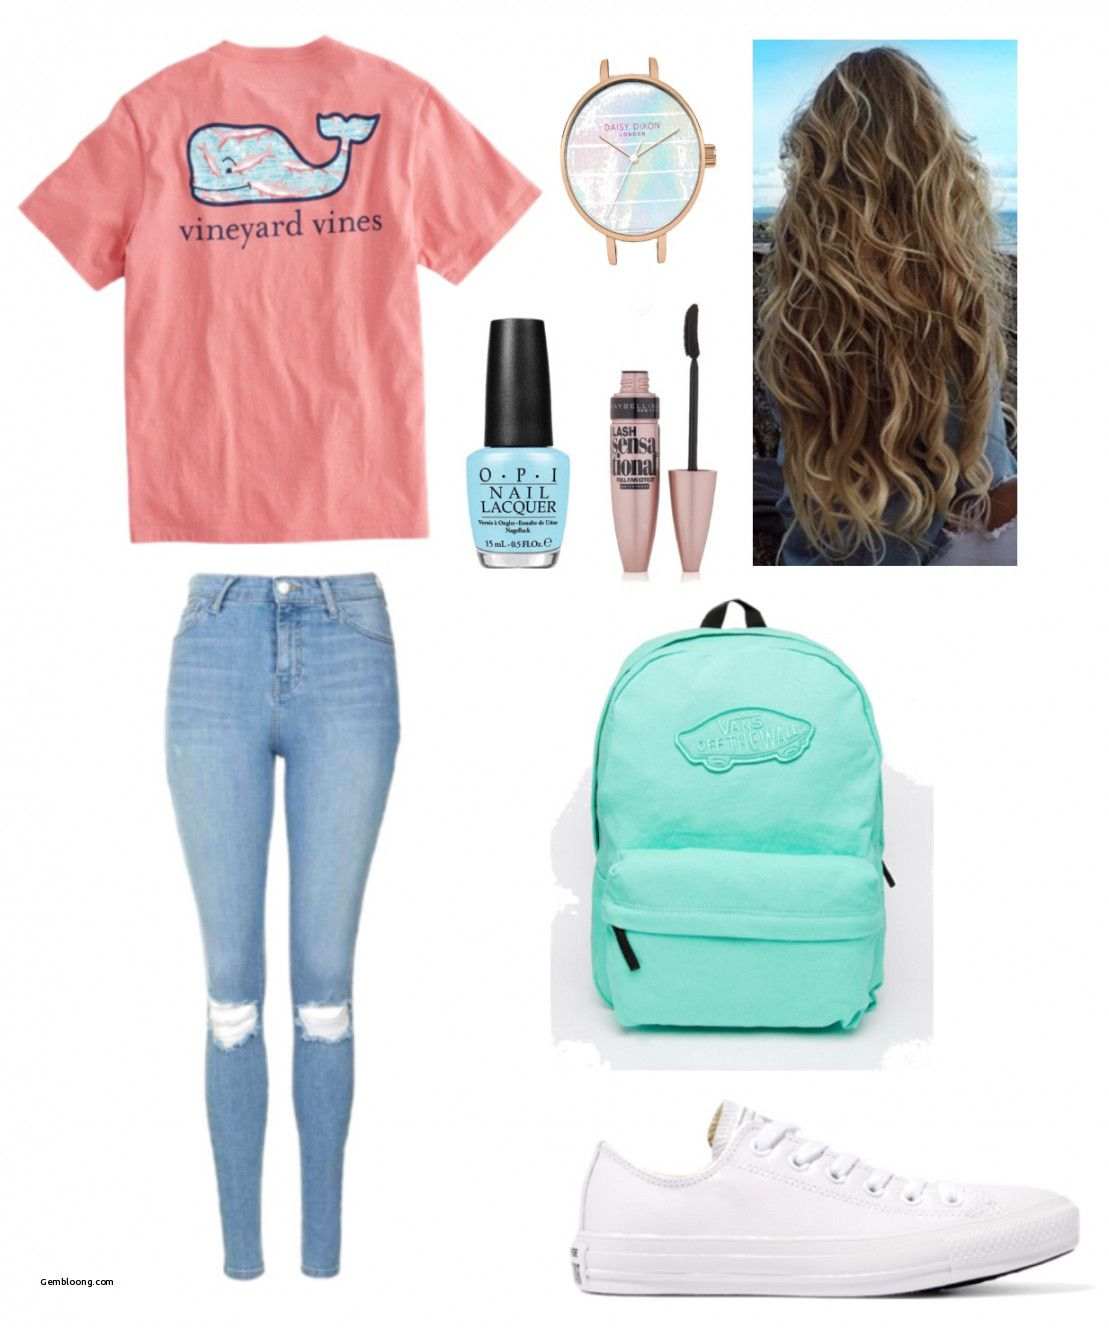 Cute Outfits With Jeans For Middle School Nils Stucki